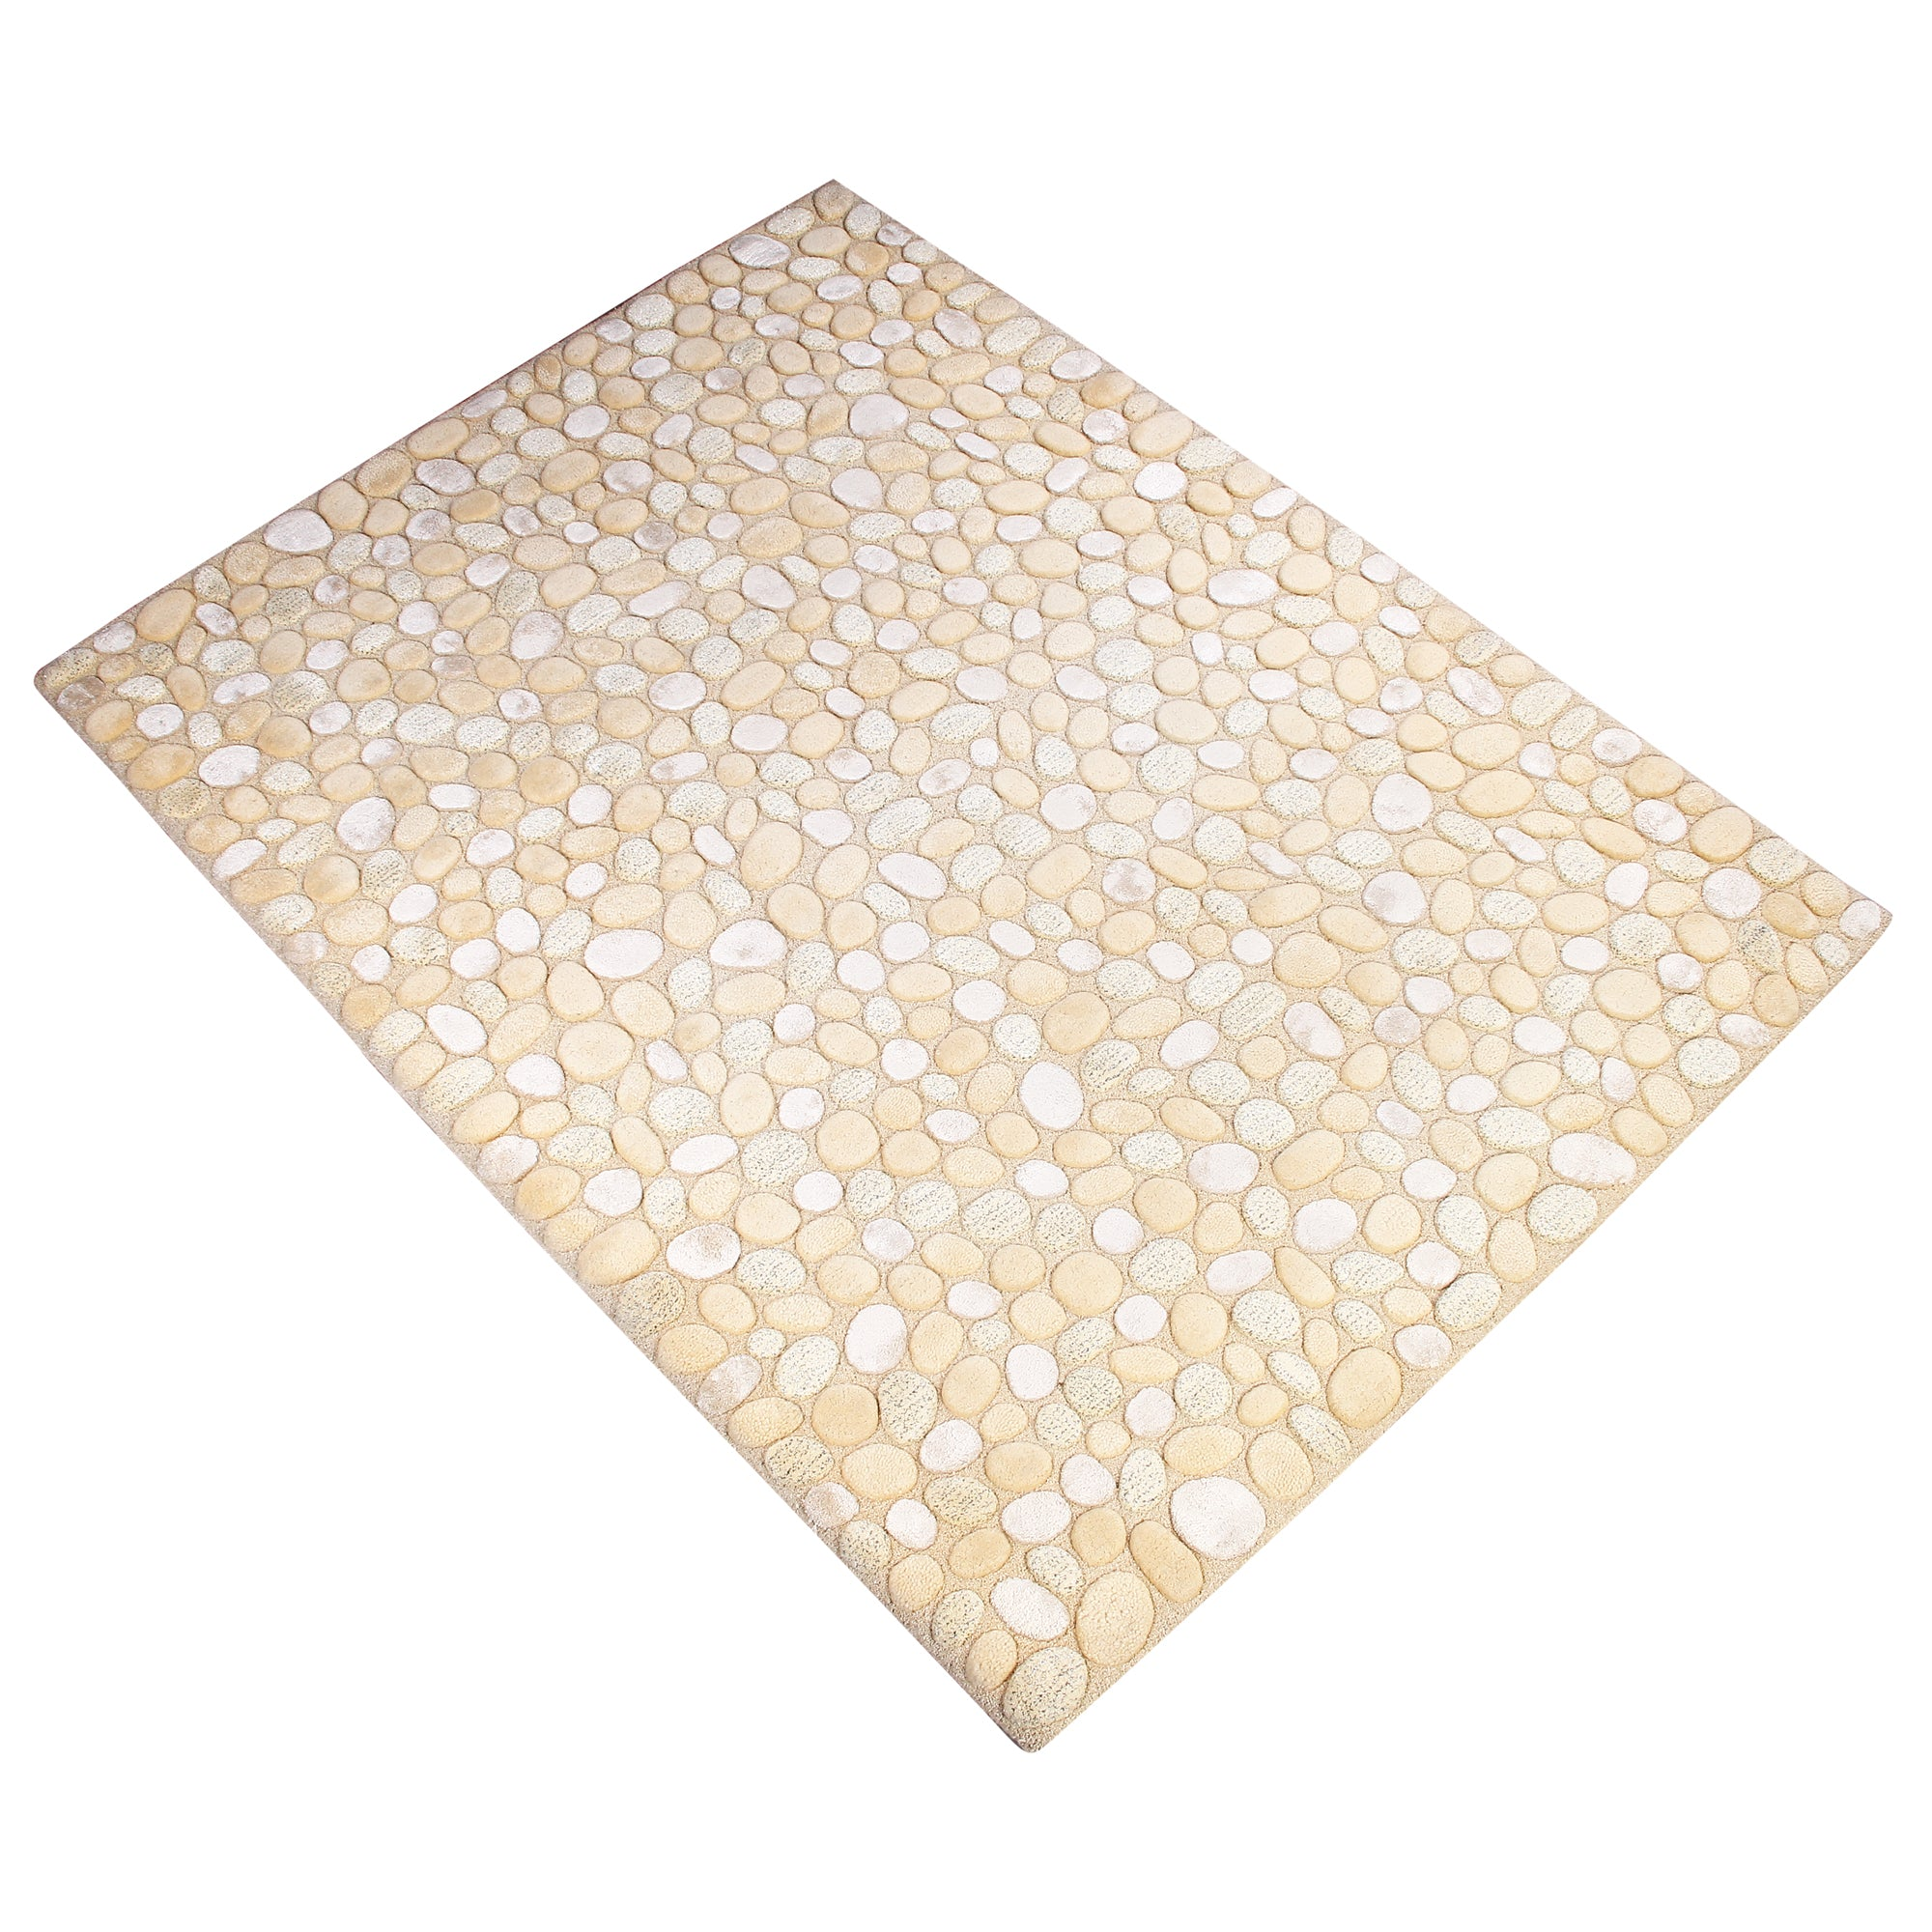 BEIGE WHITE GREEN EMBOSSED PEBBLE DESIGN HAND TUFTED RUG